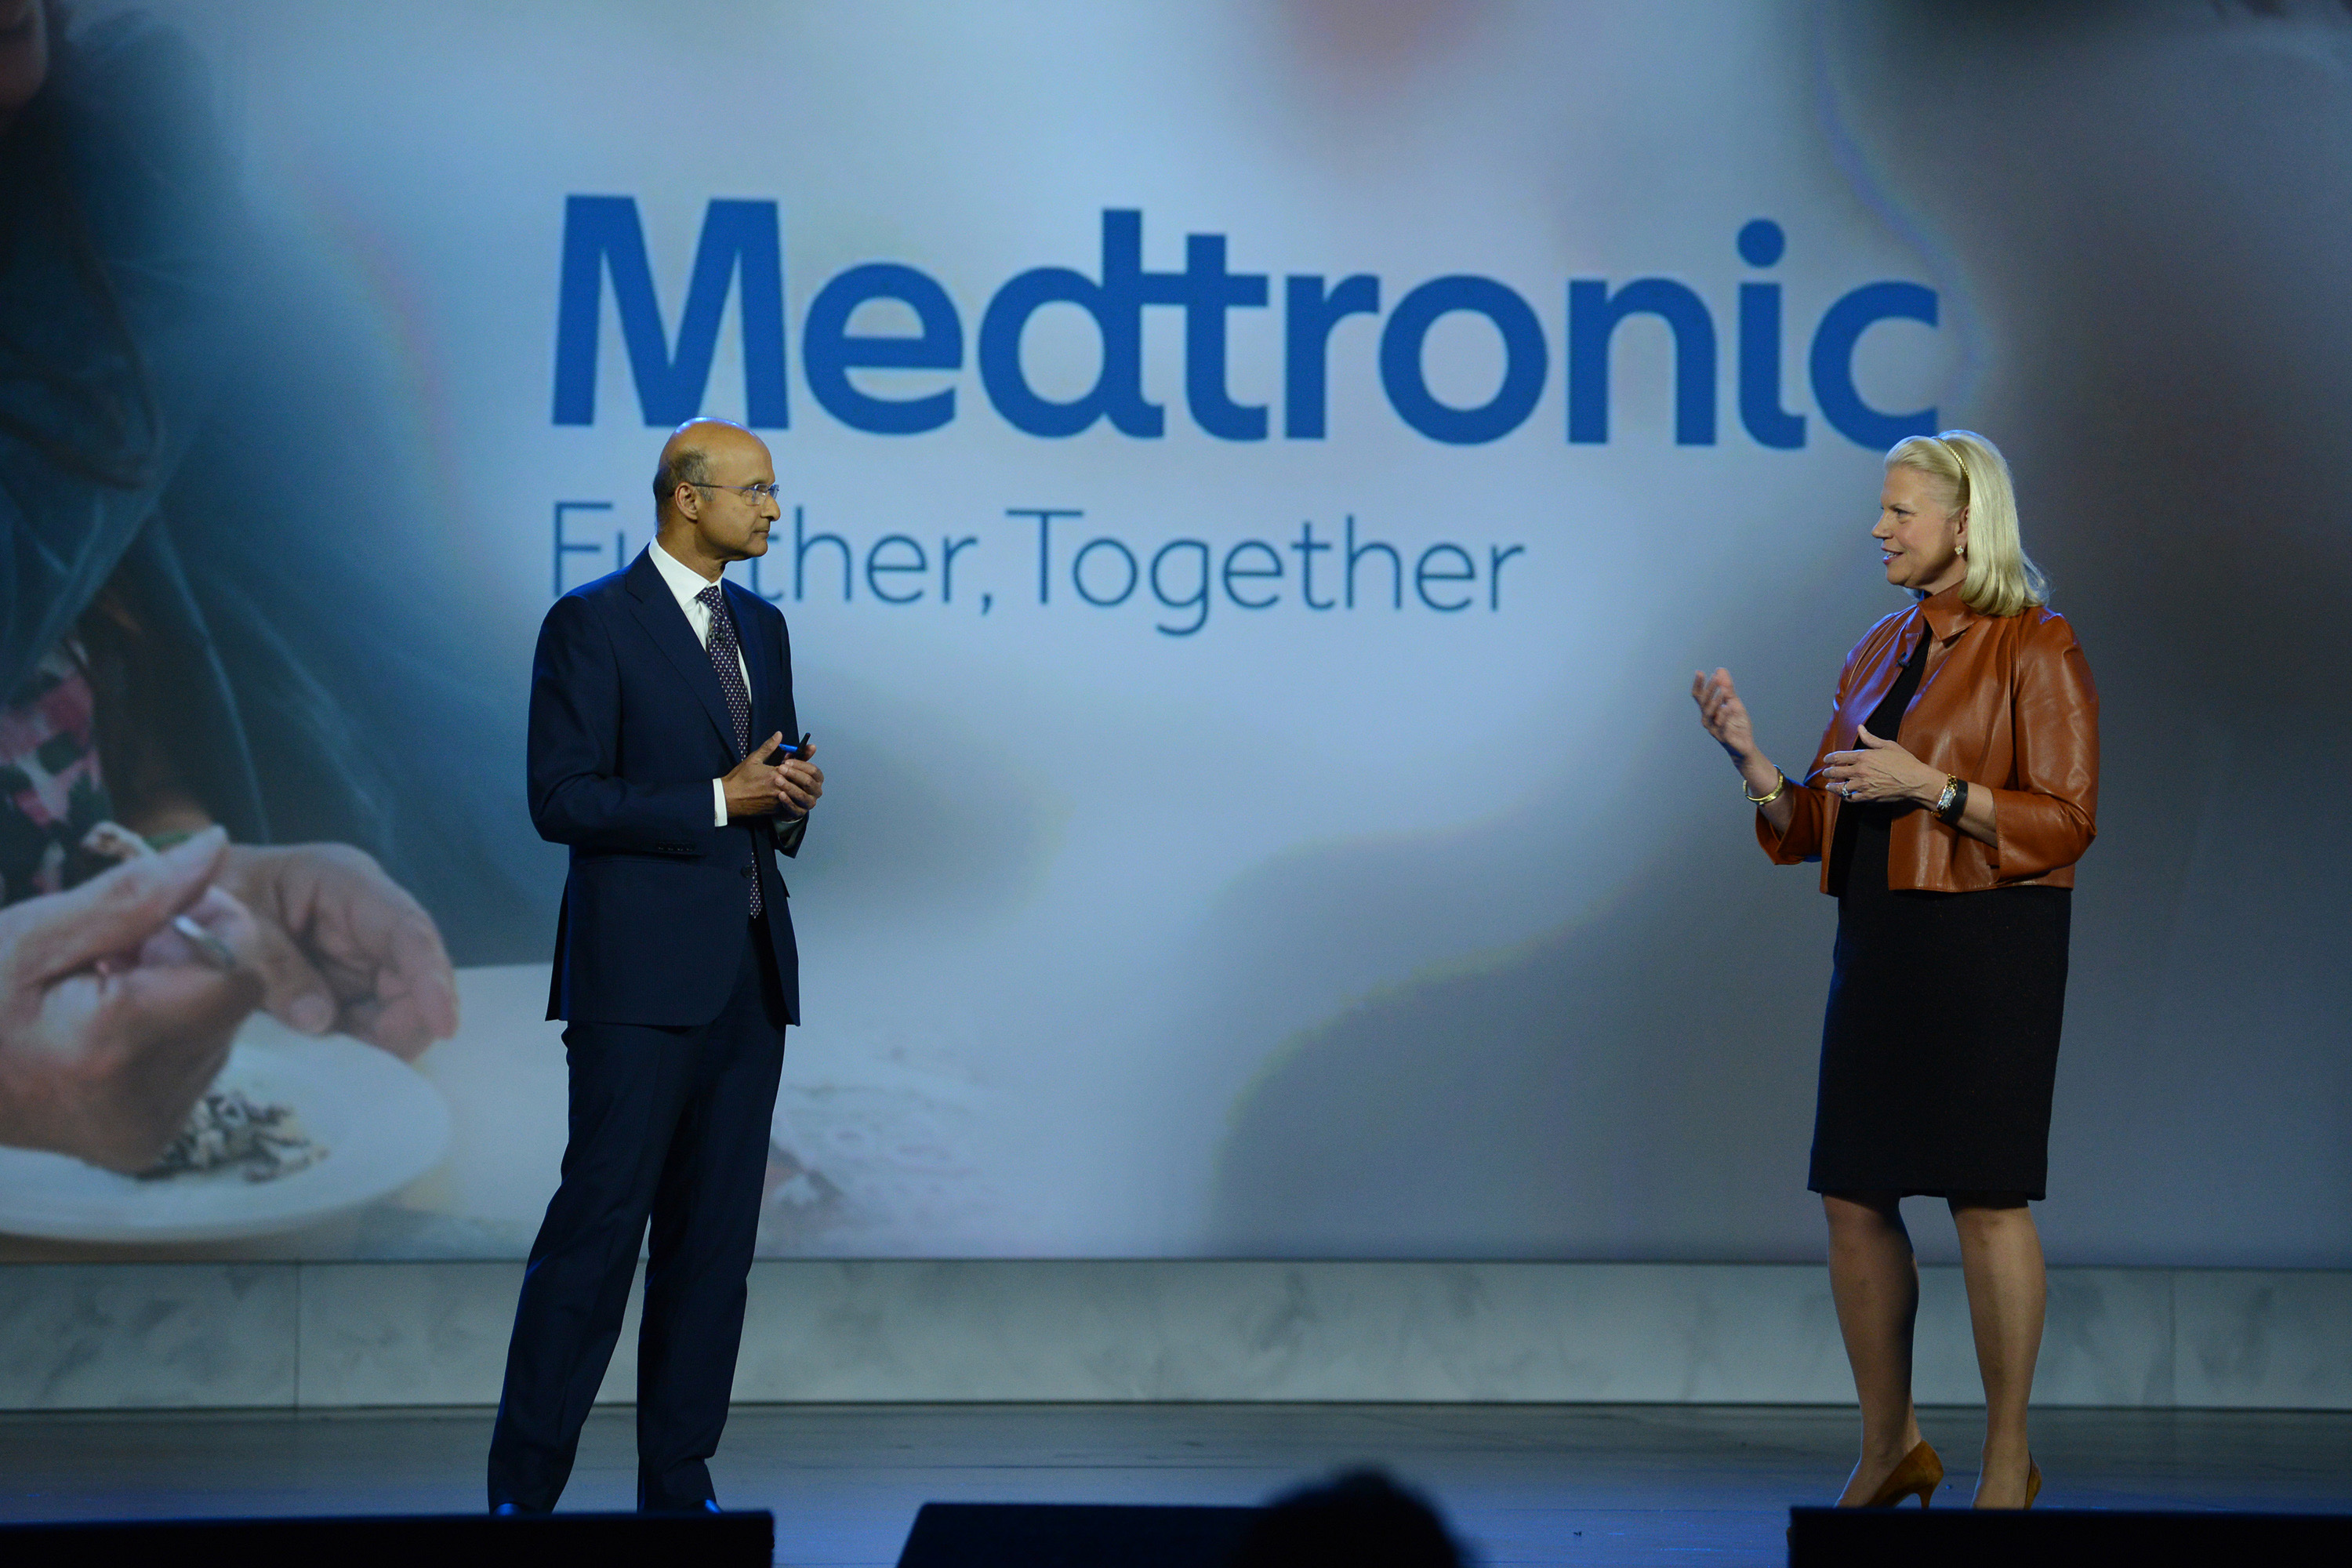 AT CES, IBM AND MEDTRONIC UNVEIL PLANS FOR COGNITIVE DIABETES APP